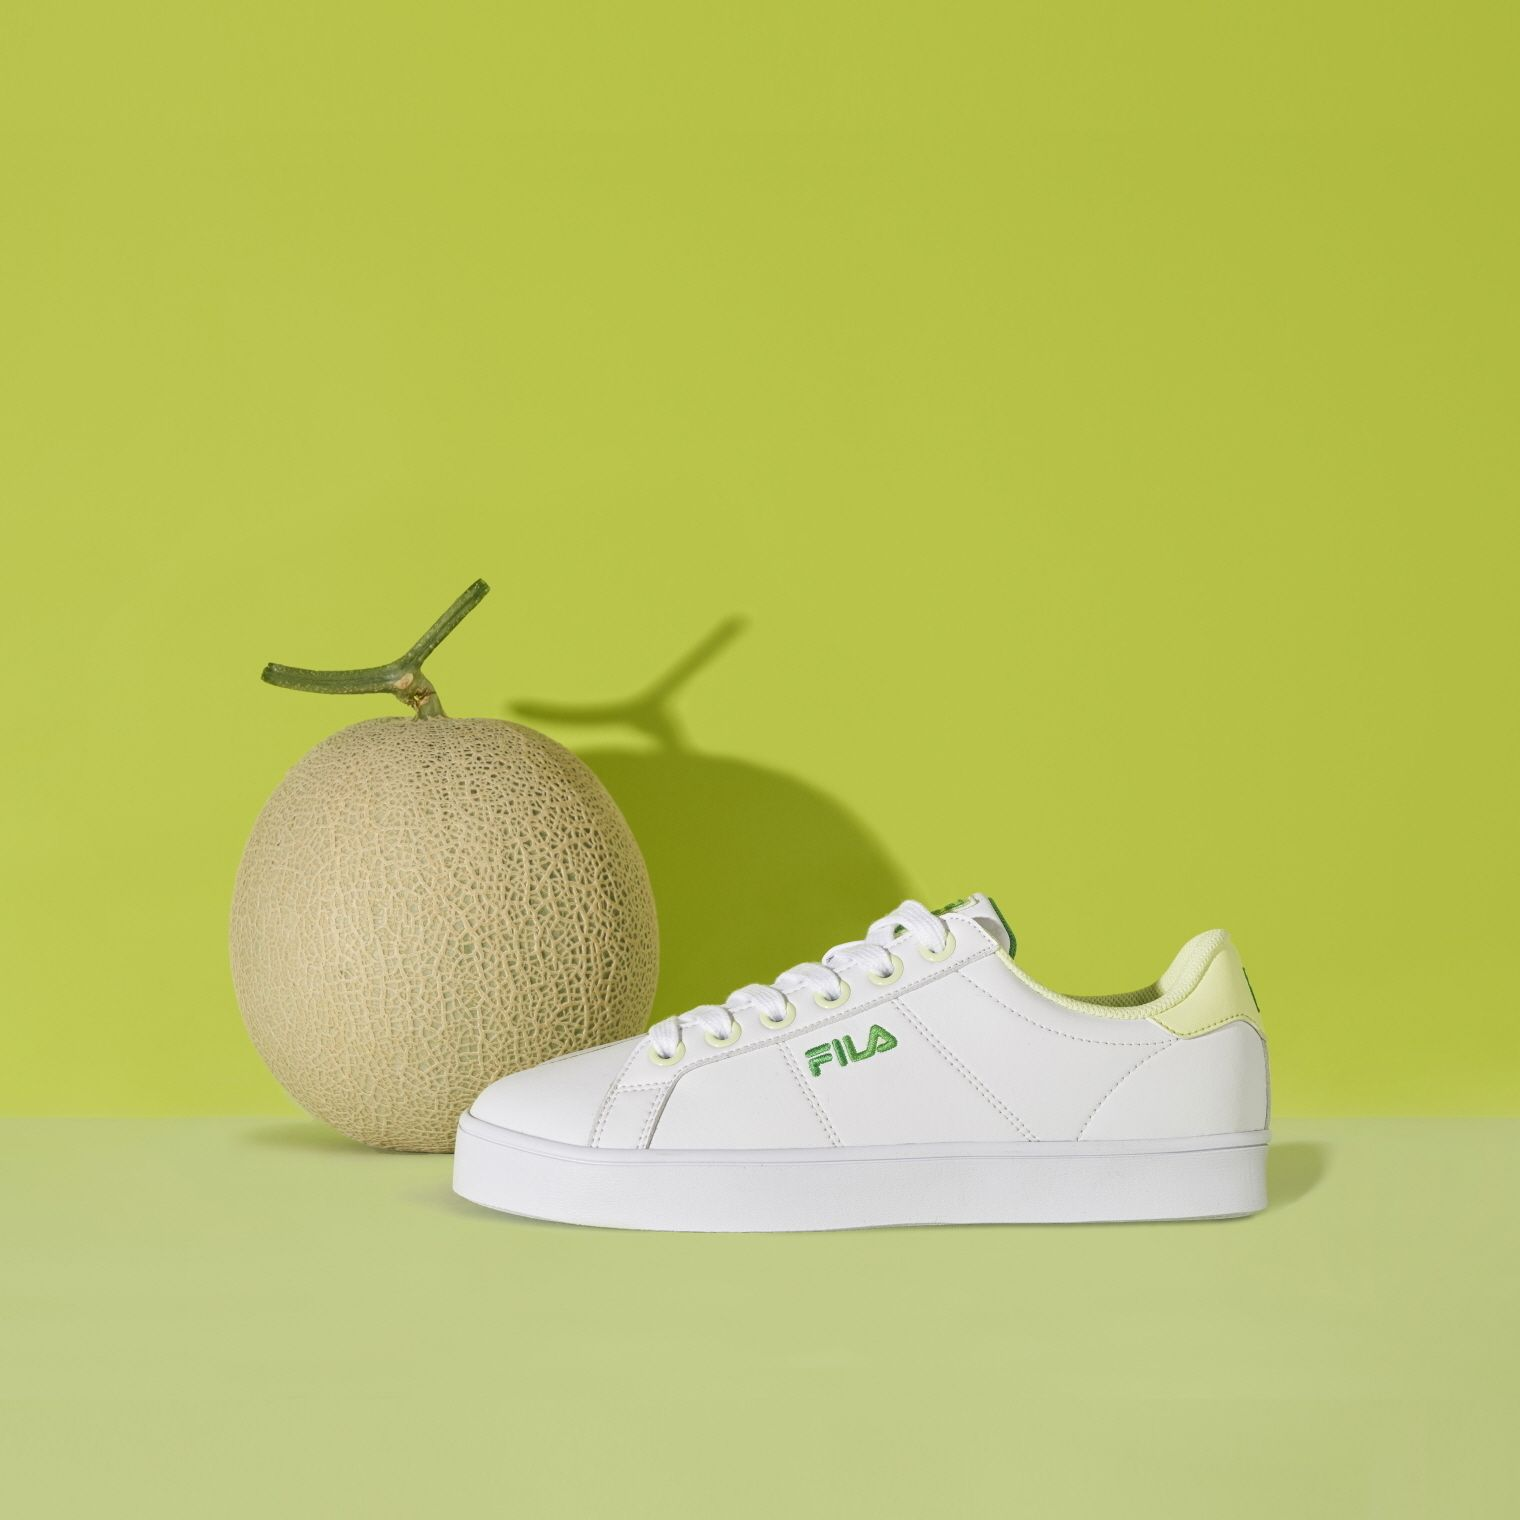 974fae715e5a FILA Low-Top Melona x FILA Court Deluxe White Green limited Fira EMS 17SS 2